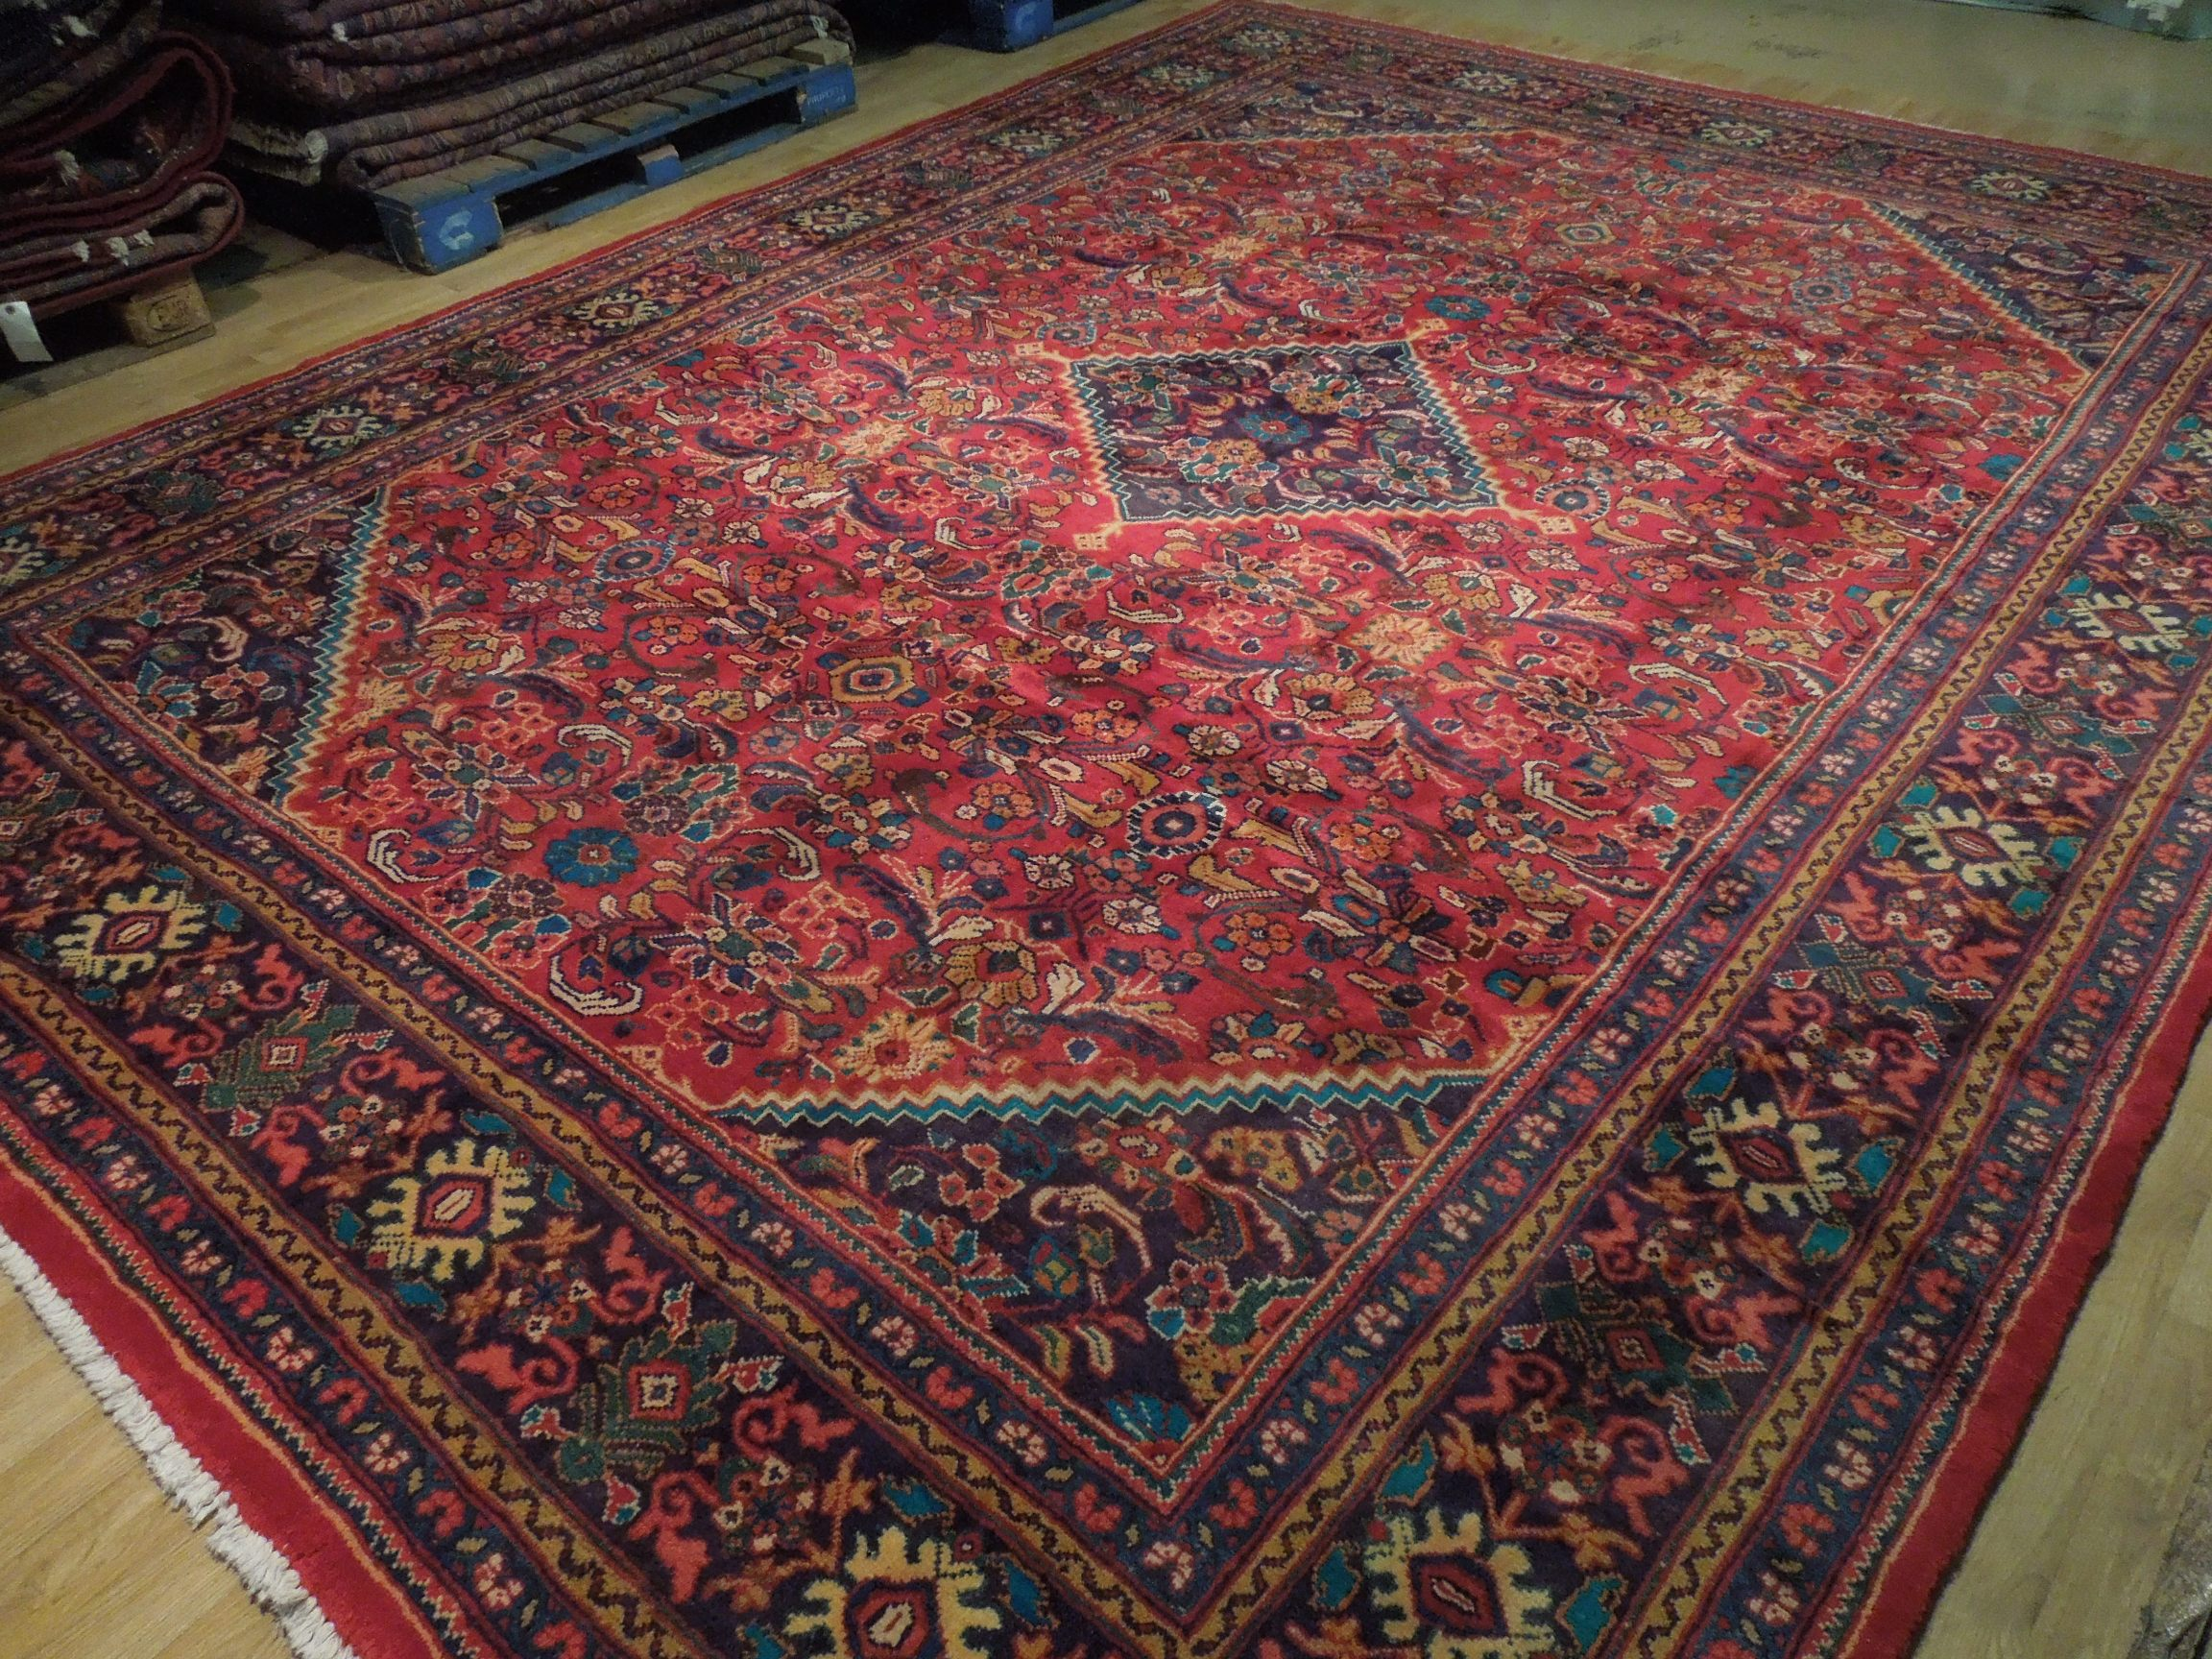 Durable Semi Antique Red Herati Persian Wool Genuine Hand Knotted Rug 10x13 Rug Ebay